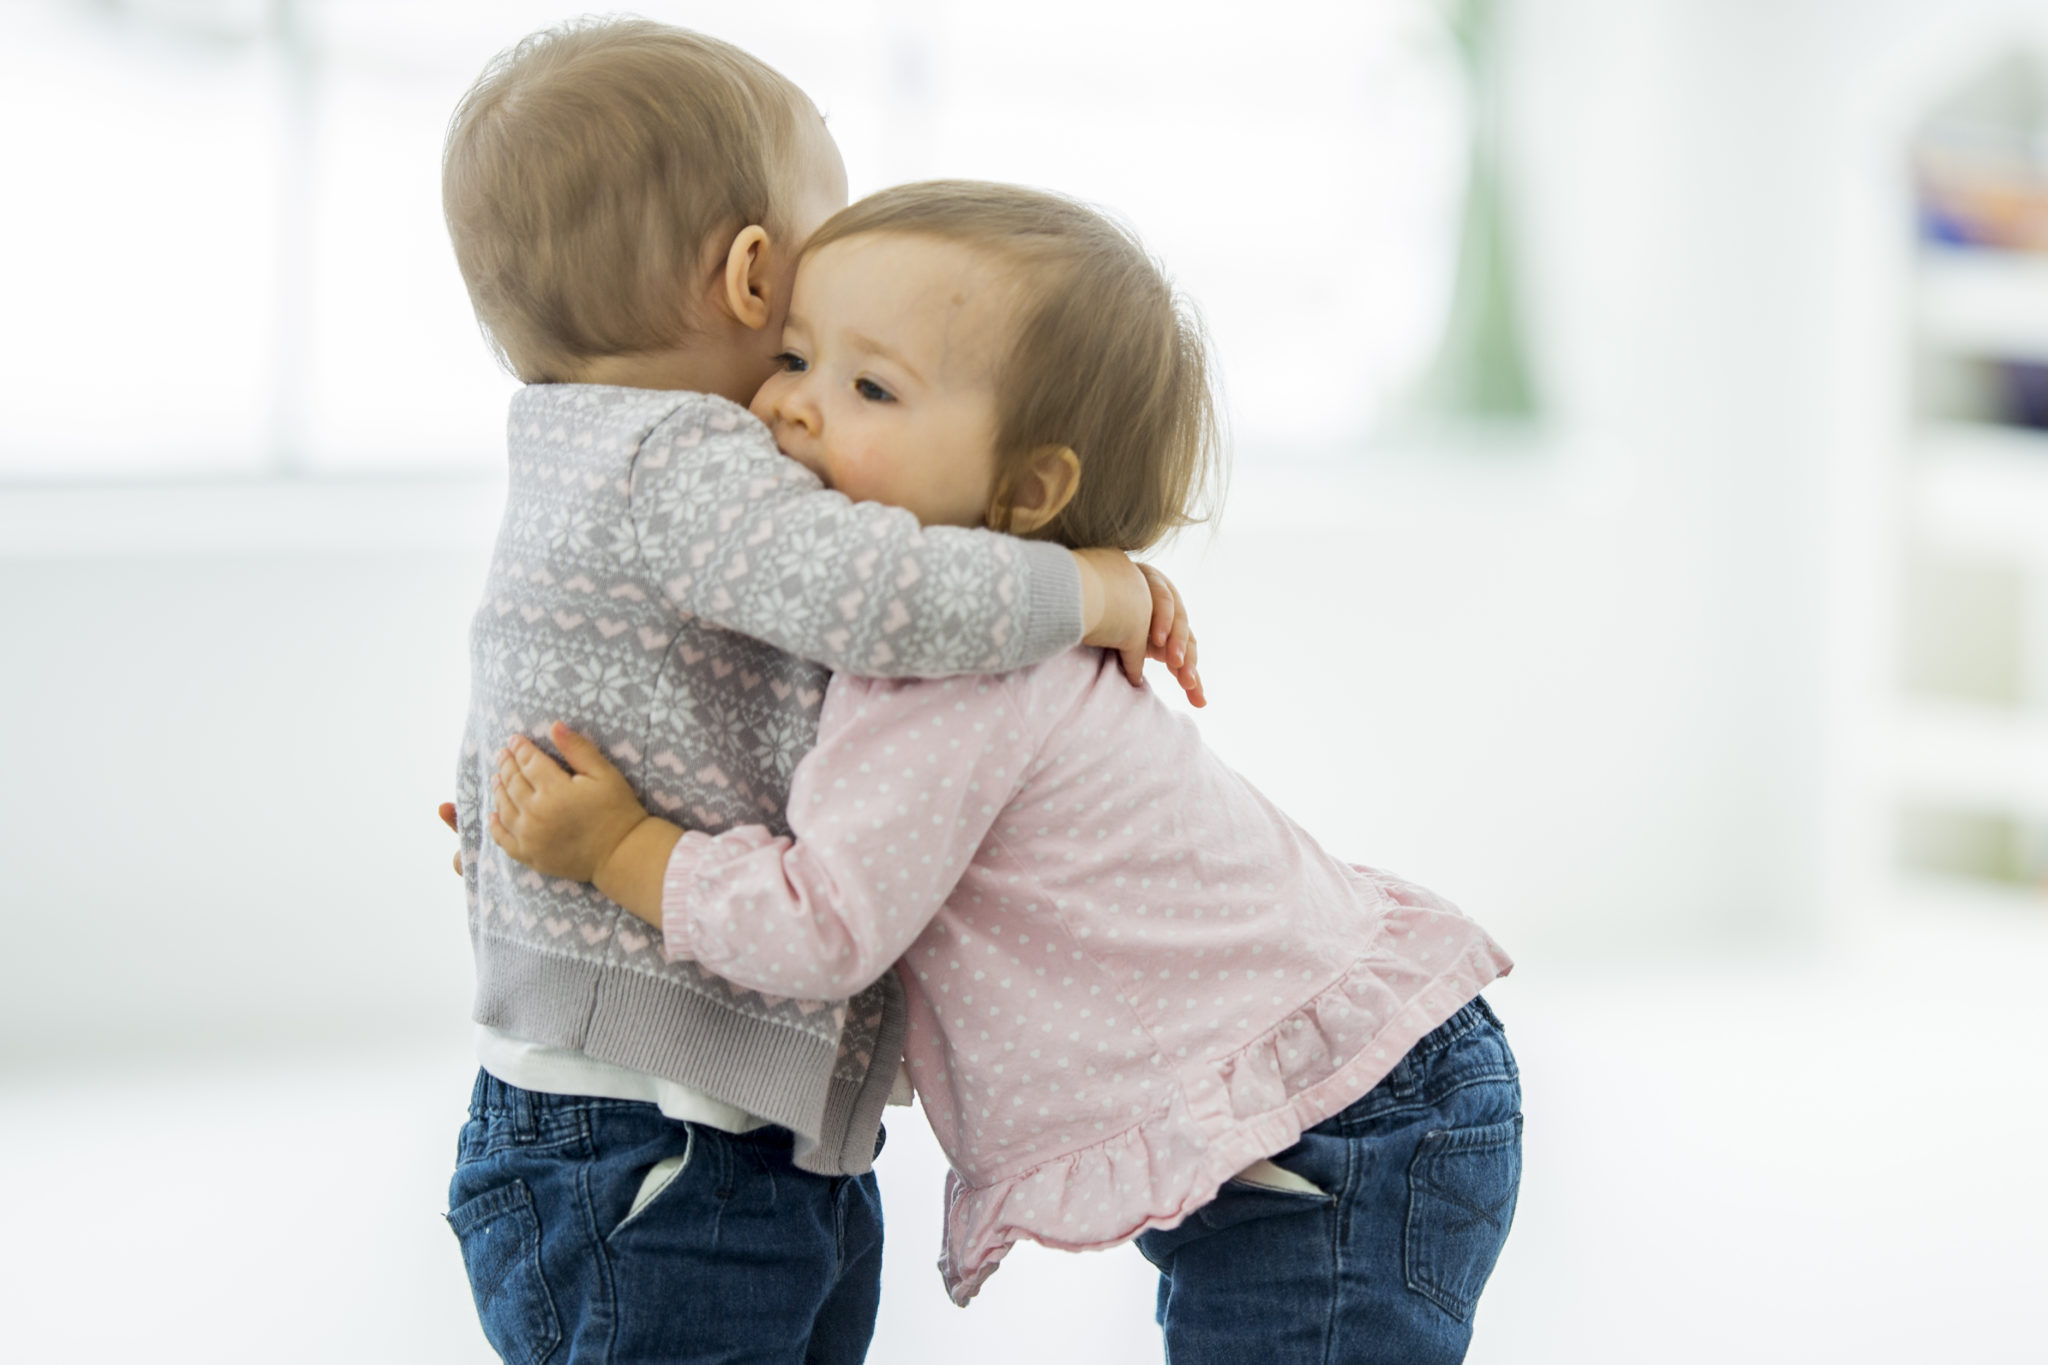 Two twin baby girls are playing together and hugging at daycare.